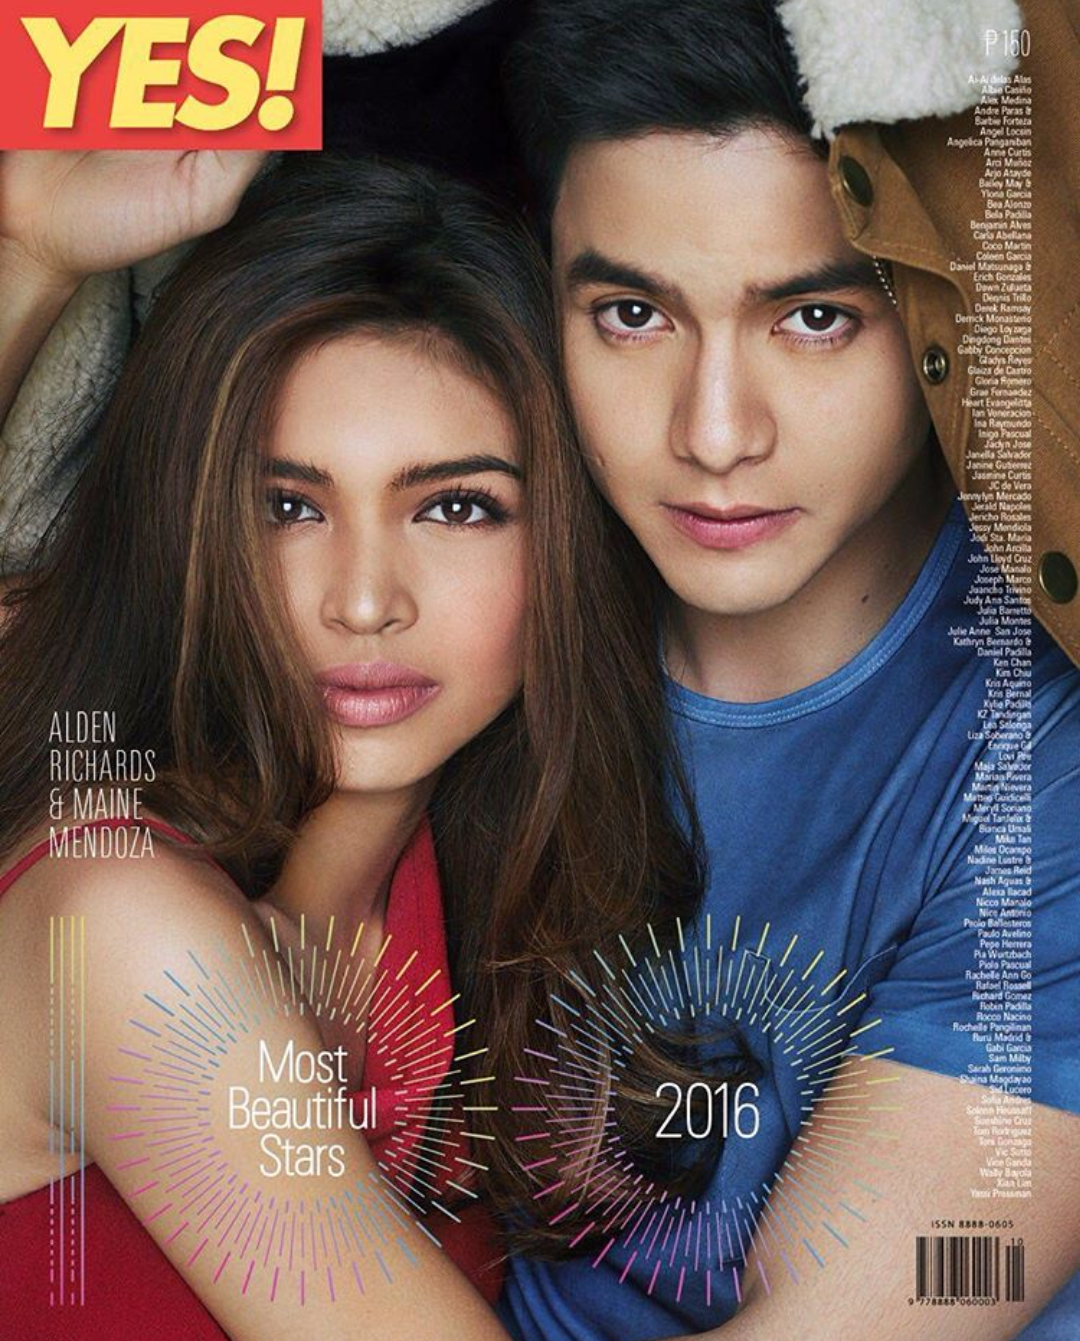 Yes! 100 Most Beautiful Stars 2016